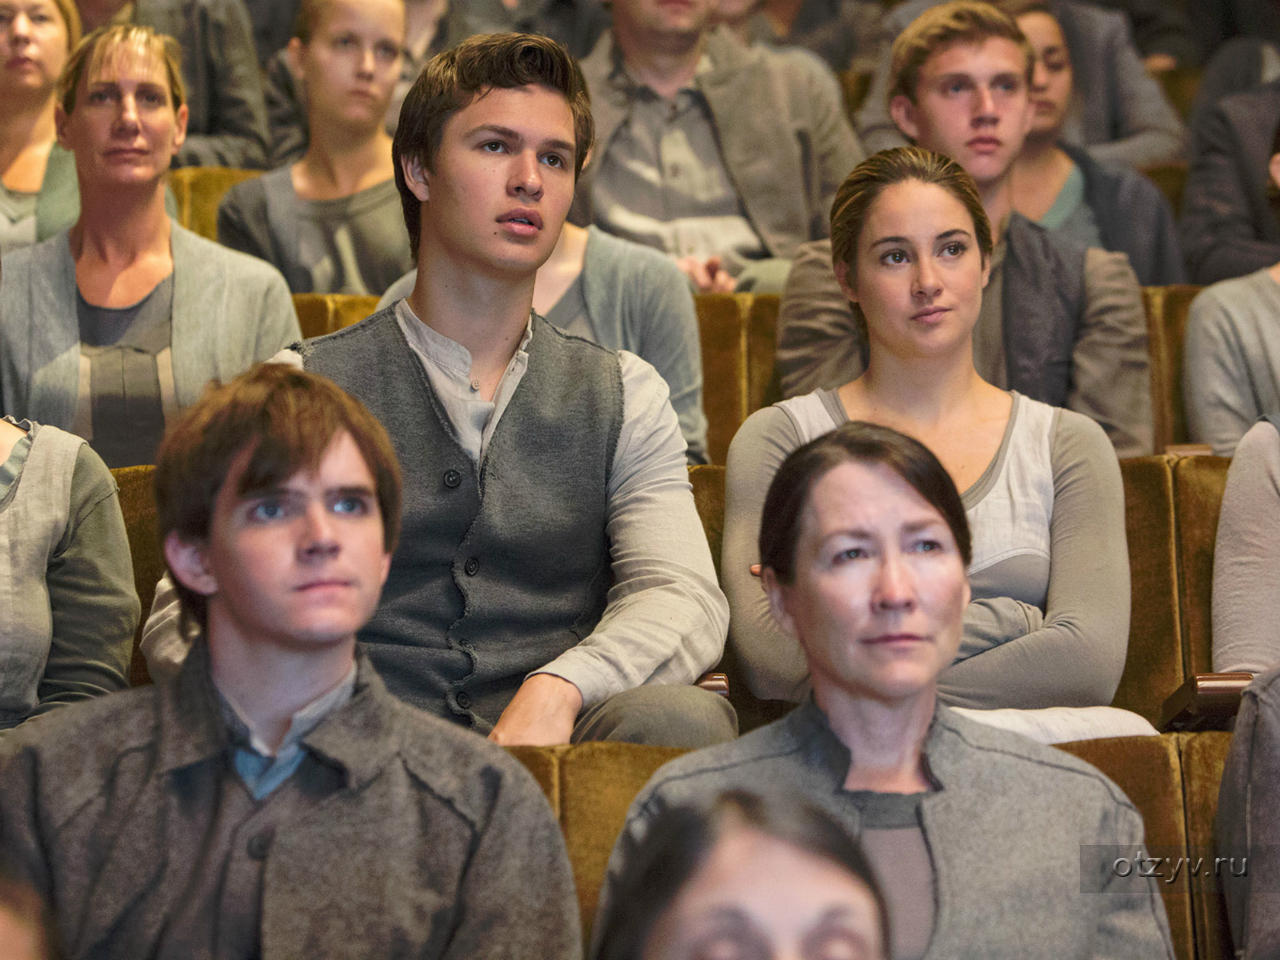 Are the main characters in divergent dating after divorce